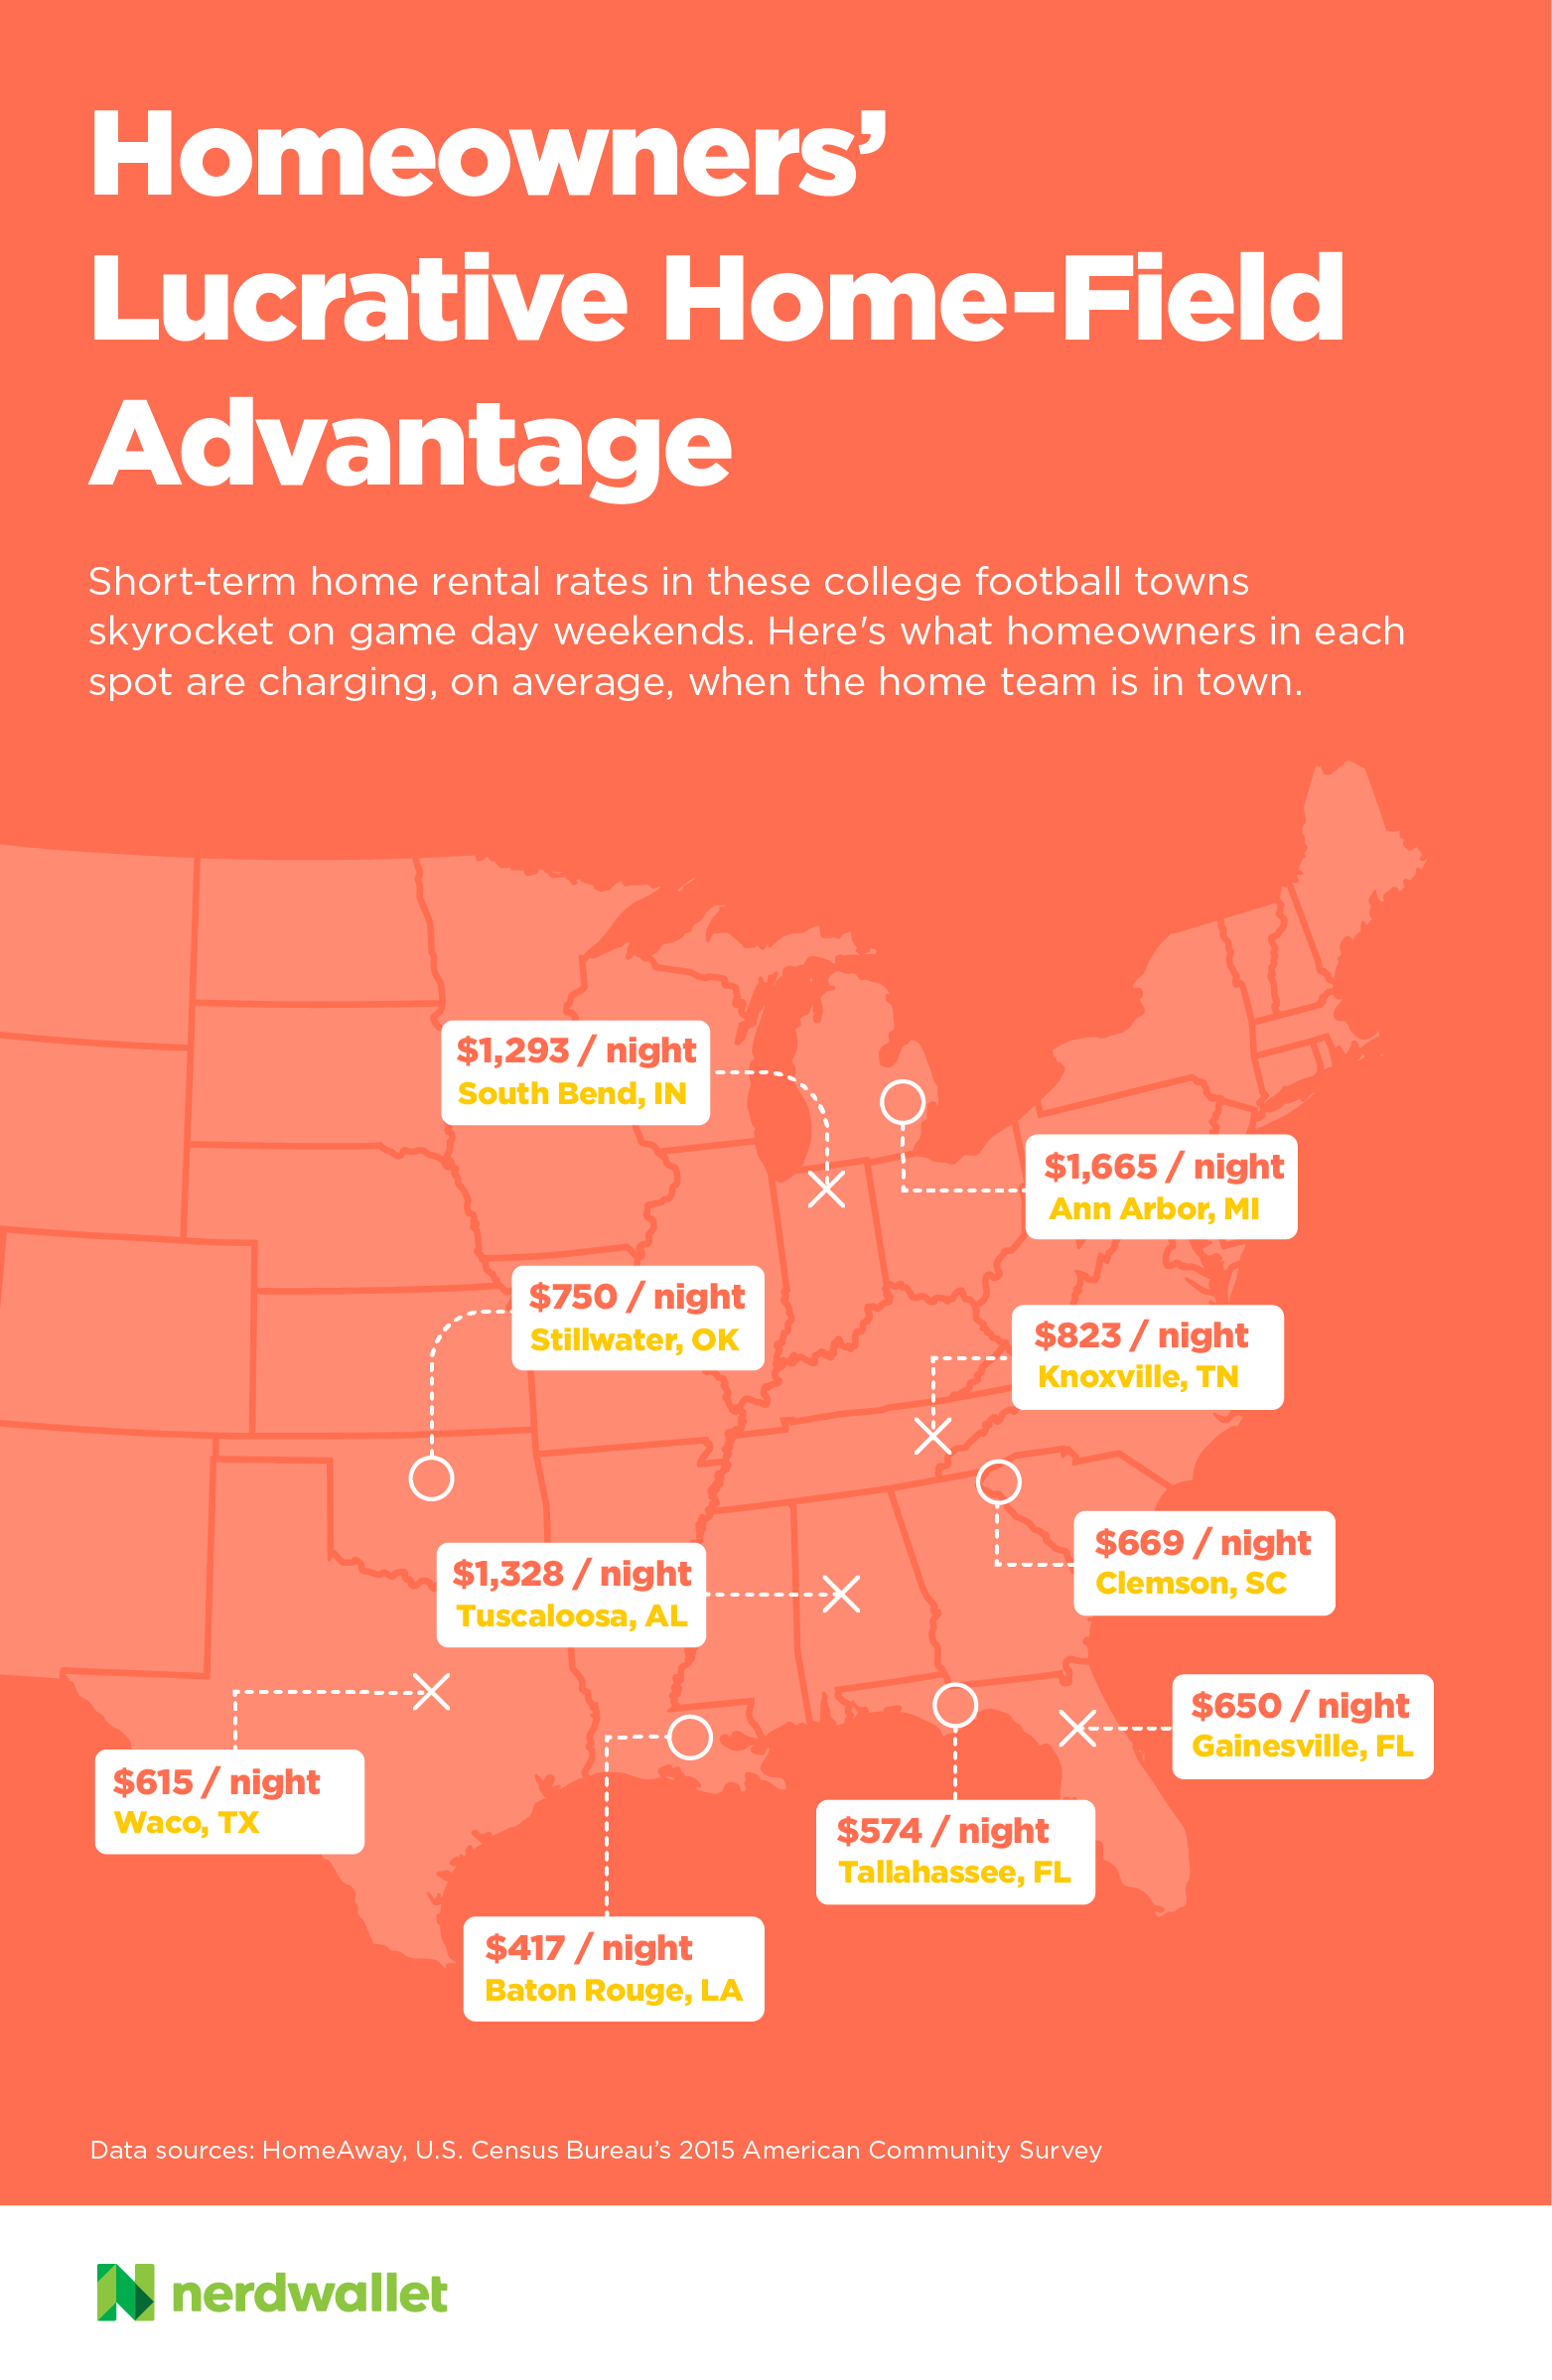 Renting Out Homes in These College Towns Can Help Cut Mortgage Costs